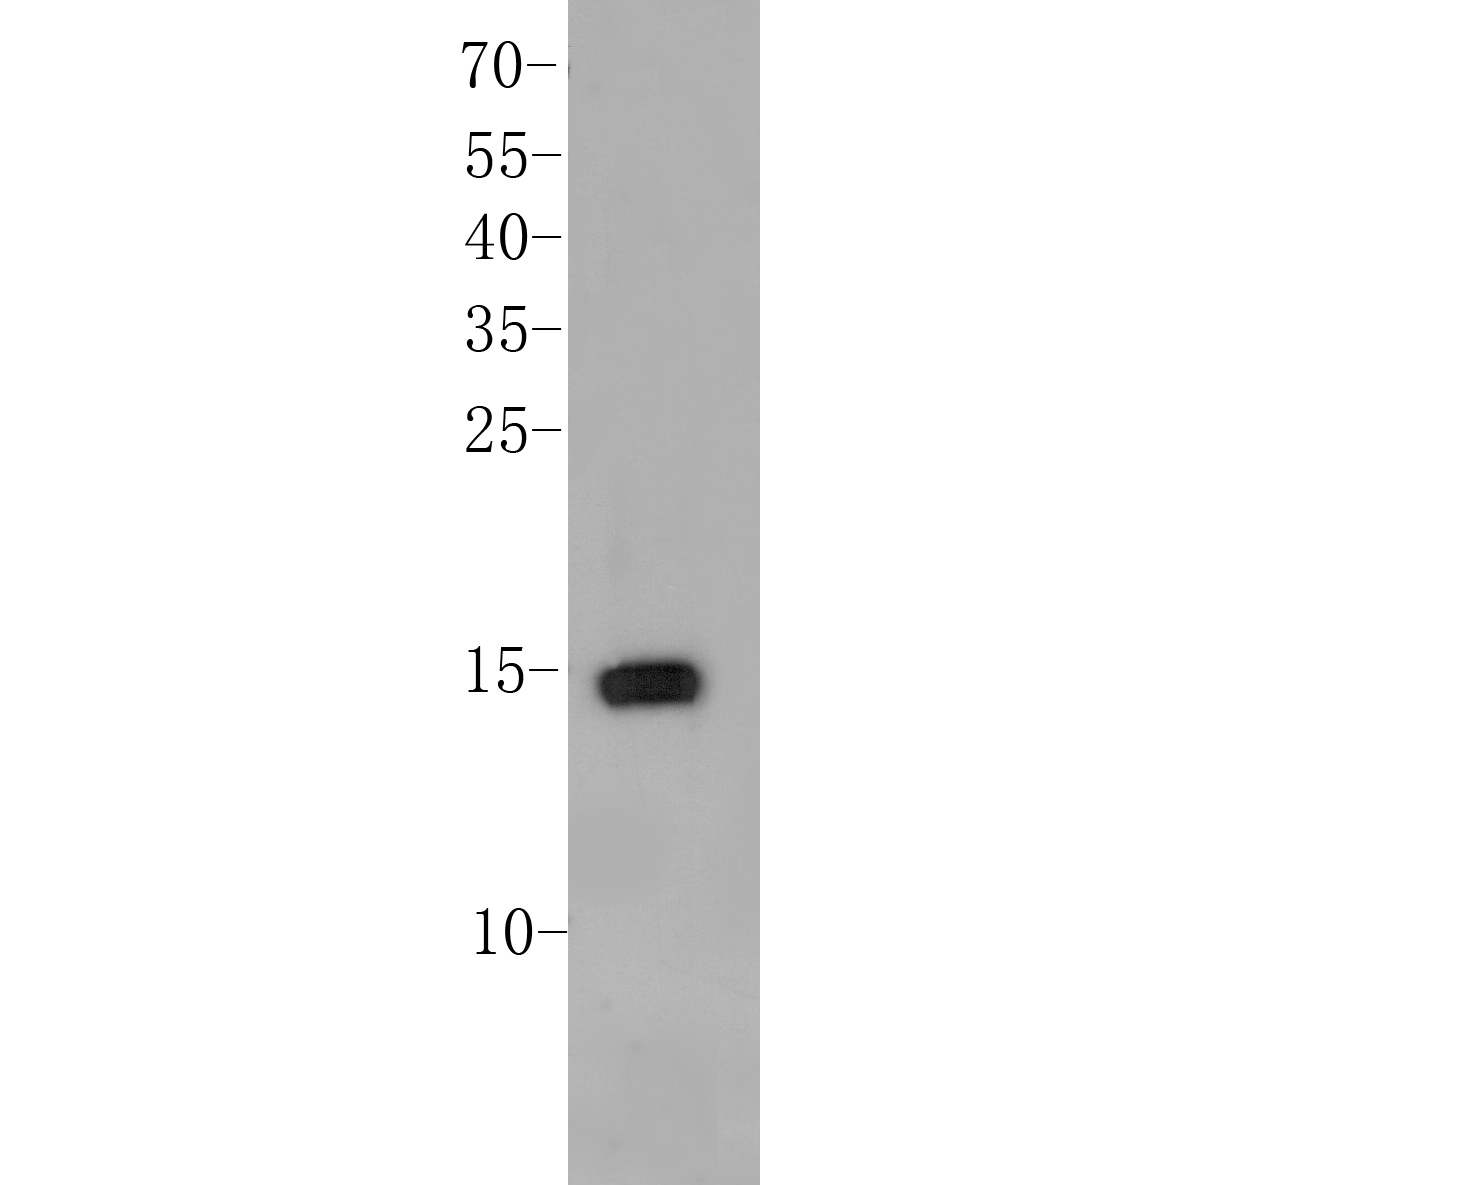 Western blot analysis of Histone H2A.x on MCF-7 cell lysate. Proteins were transferred to a PVDF membrane and blocked with 5% BSA in PBS for 1 hour at room temperature. The primary antibody (ER1901-70, 1/500) was used in 5% BSA at room temperature for 2 hours. Goat Anti-Rabbit IgG - HRP Secondary Antibody (HA1001) at 1:5,000 dilution was used for 1 hour at room temperature.